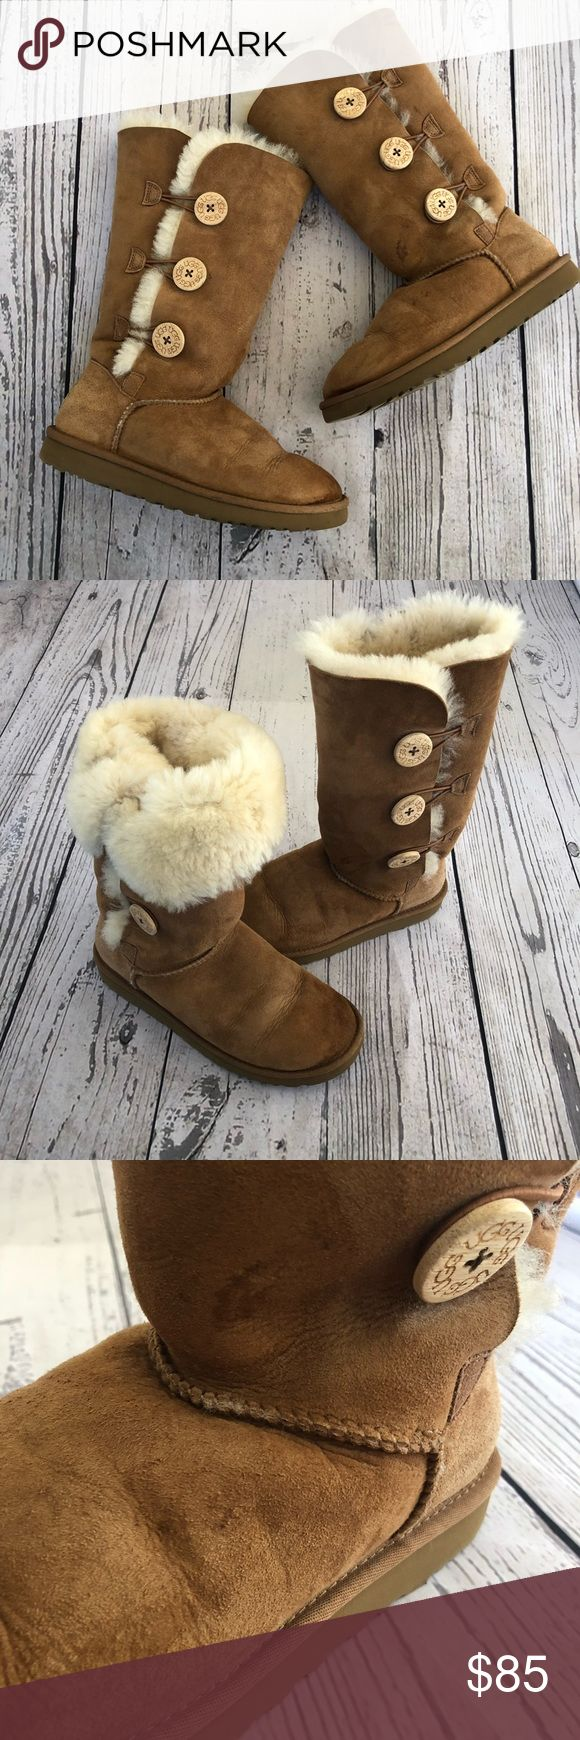 UGG Button Up Boots/ Sheep Skin Cleaning Kit Preowned in great condition  Minor flaws include: front toes of boots and a small spot on the left boot (shown in photos above) Size: 7 USA Also included is the sheep skin care kit. Only used a few times. UGG Shoes